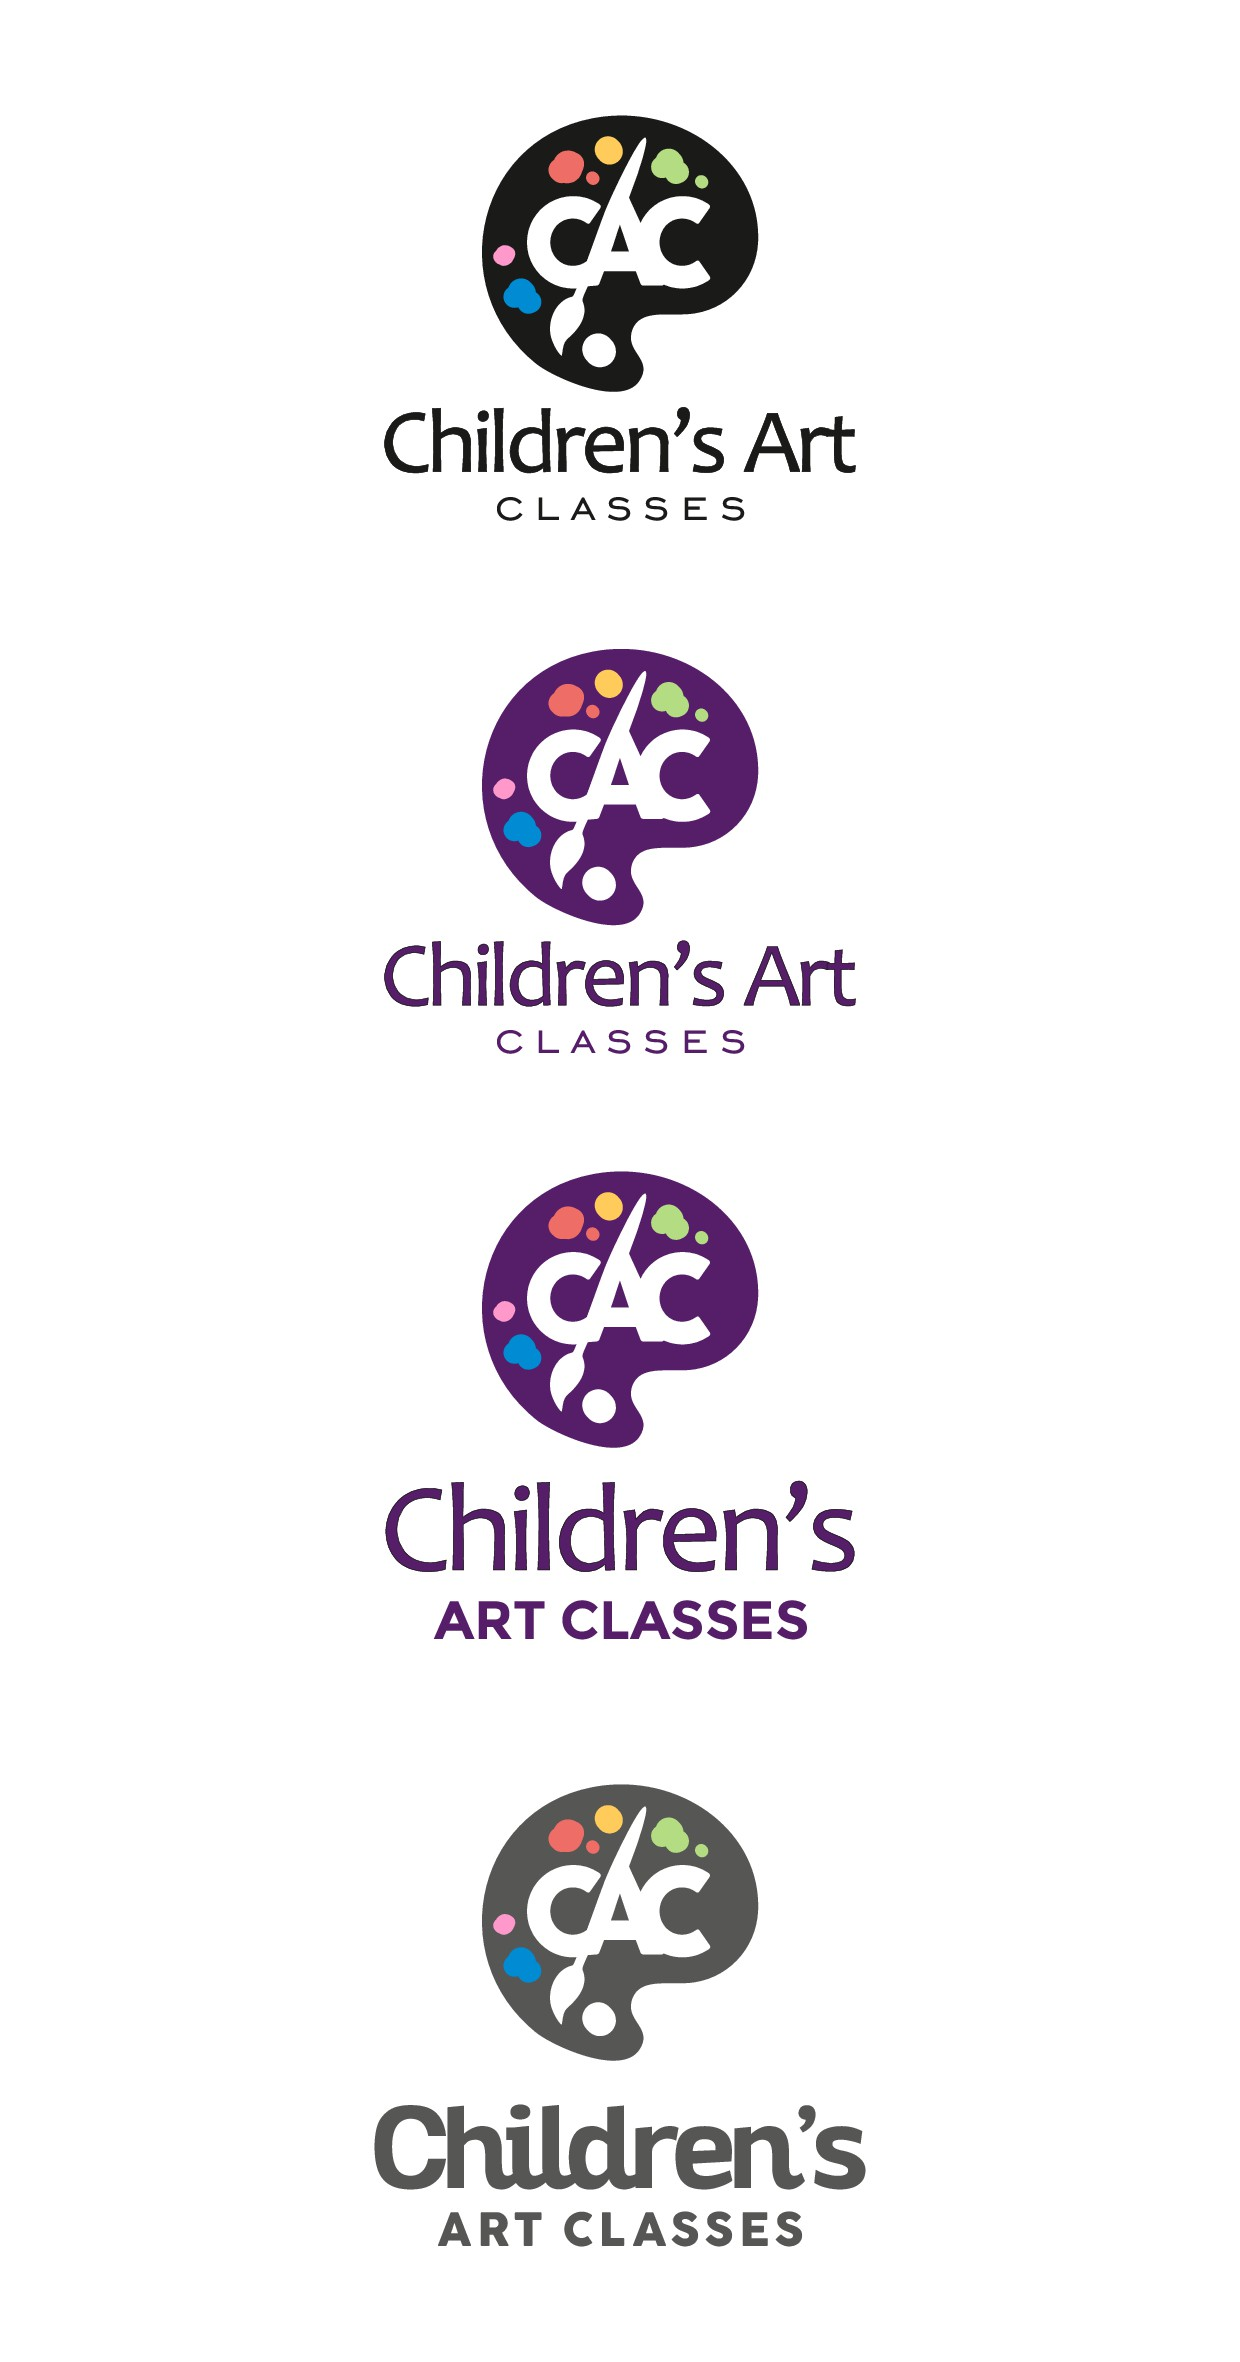 Awesome Designer Opportunity- Brand an Art School for Kids!